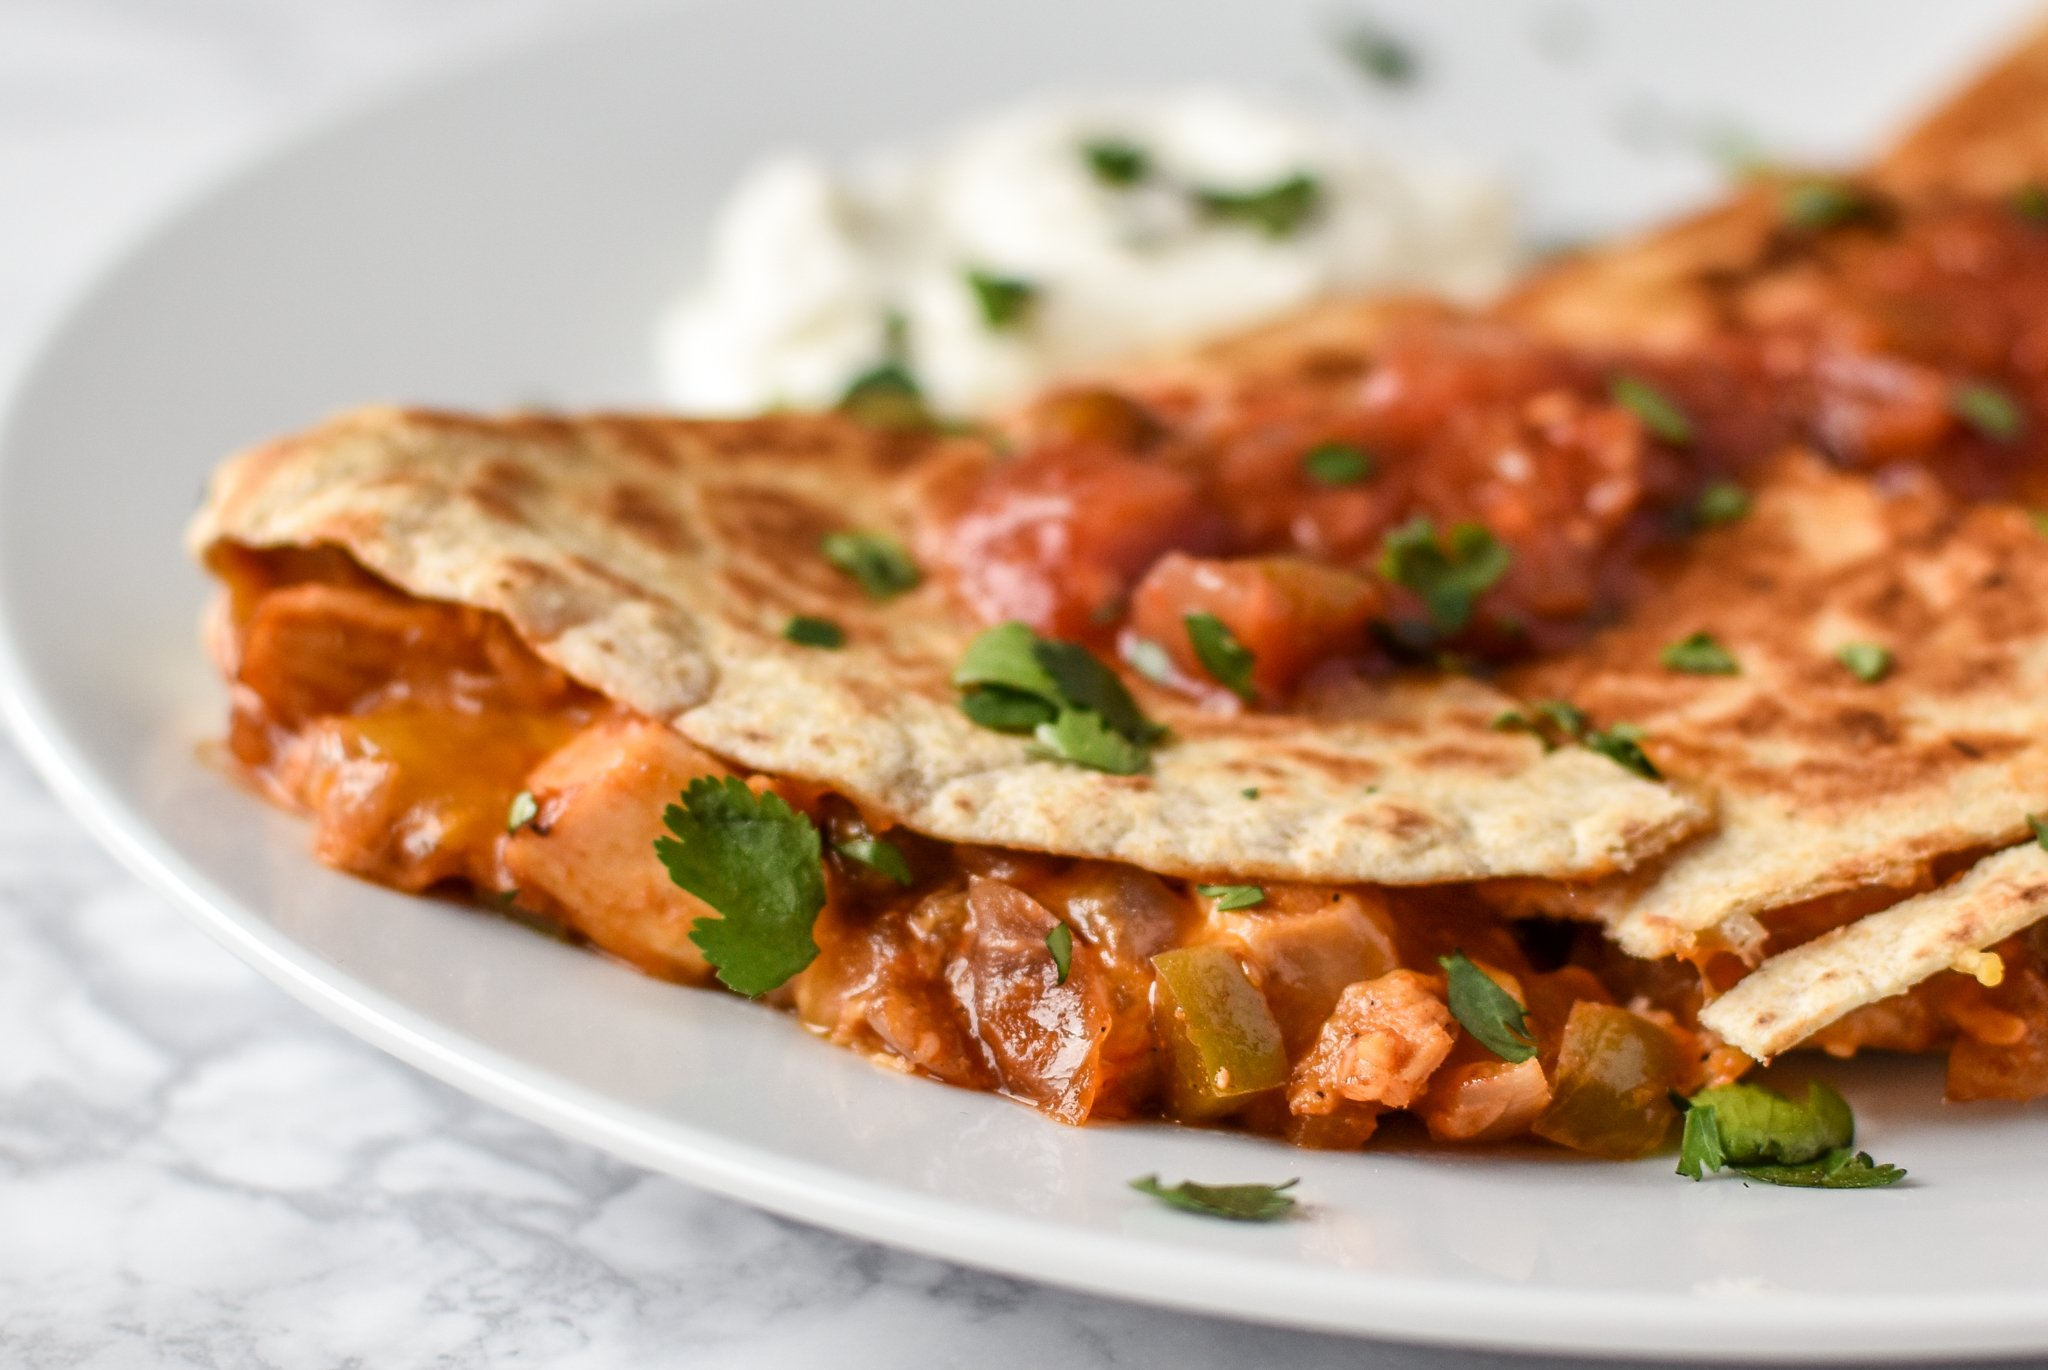 Quick BBQ Chicken Quesadillas (Make-Ahead Filling Recipe) - Delicious BBQ chicken quesadillas made in 10 minutes with pre-made filling! - ProjectMealPlan.com